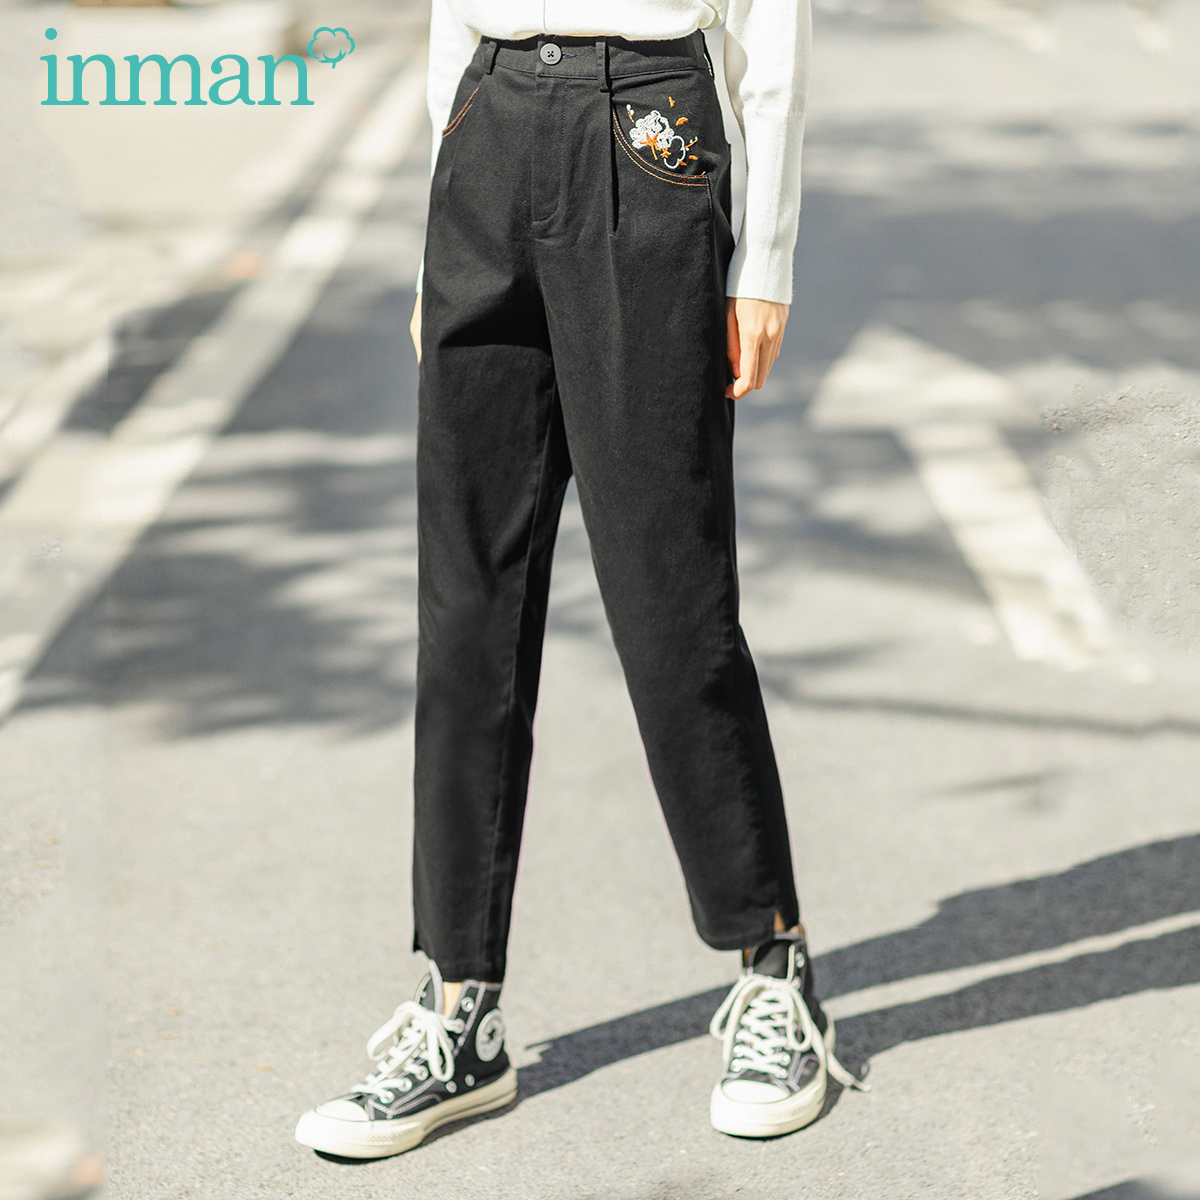 INMAN 2020 Spring New Arrival Literary High Waist Embroidered Slimmed Nine Minutes Pants